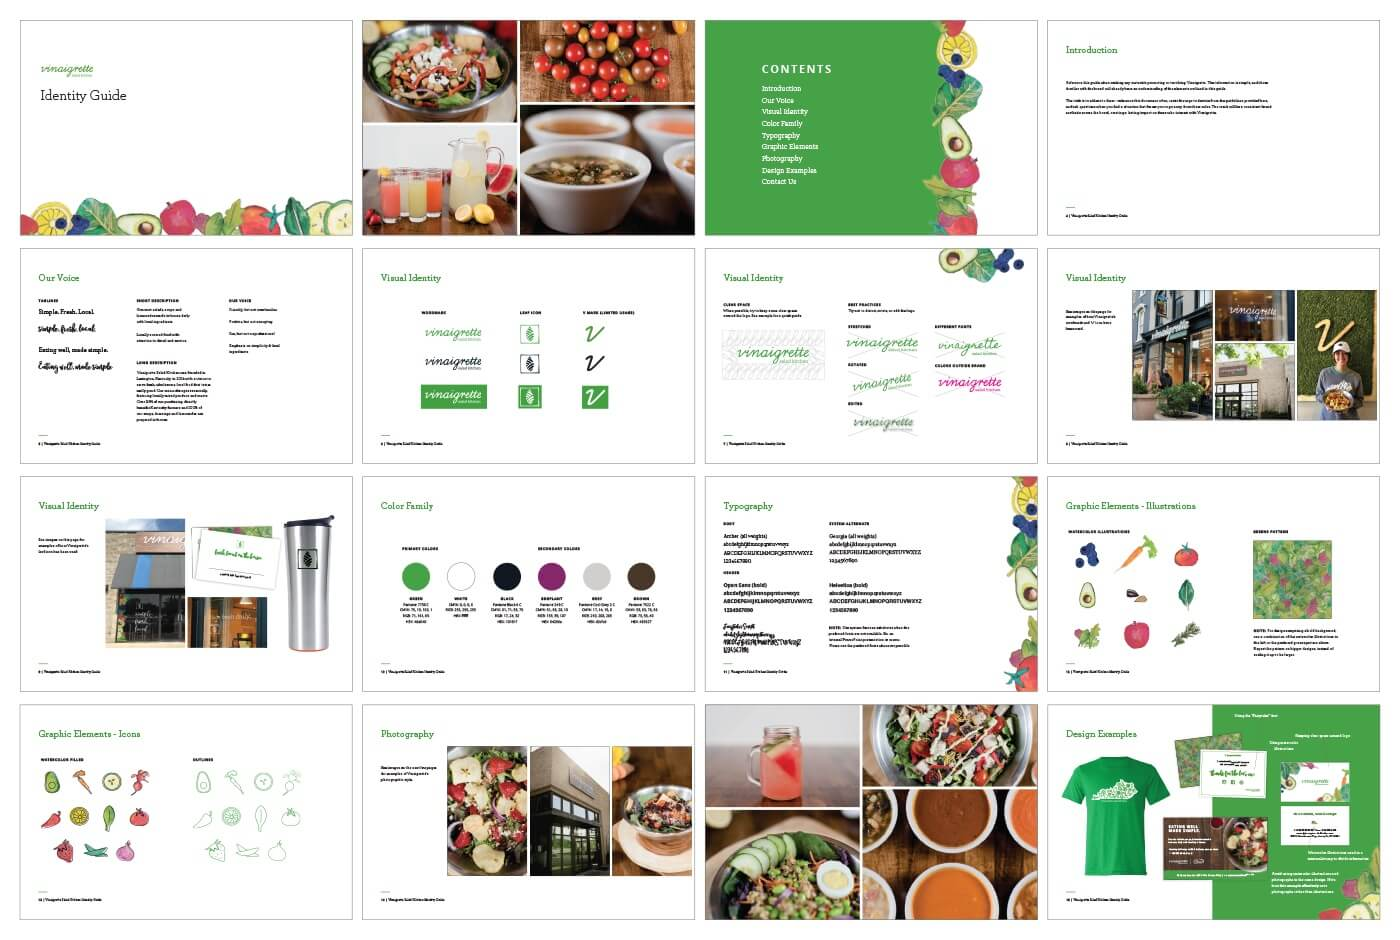 grid of pages from Vinaigrette brand style guide, including website mockups, color palettes, icons, and merchandise